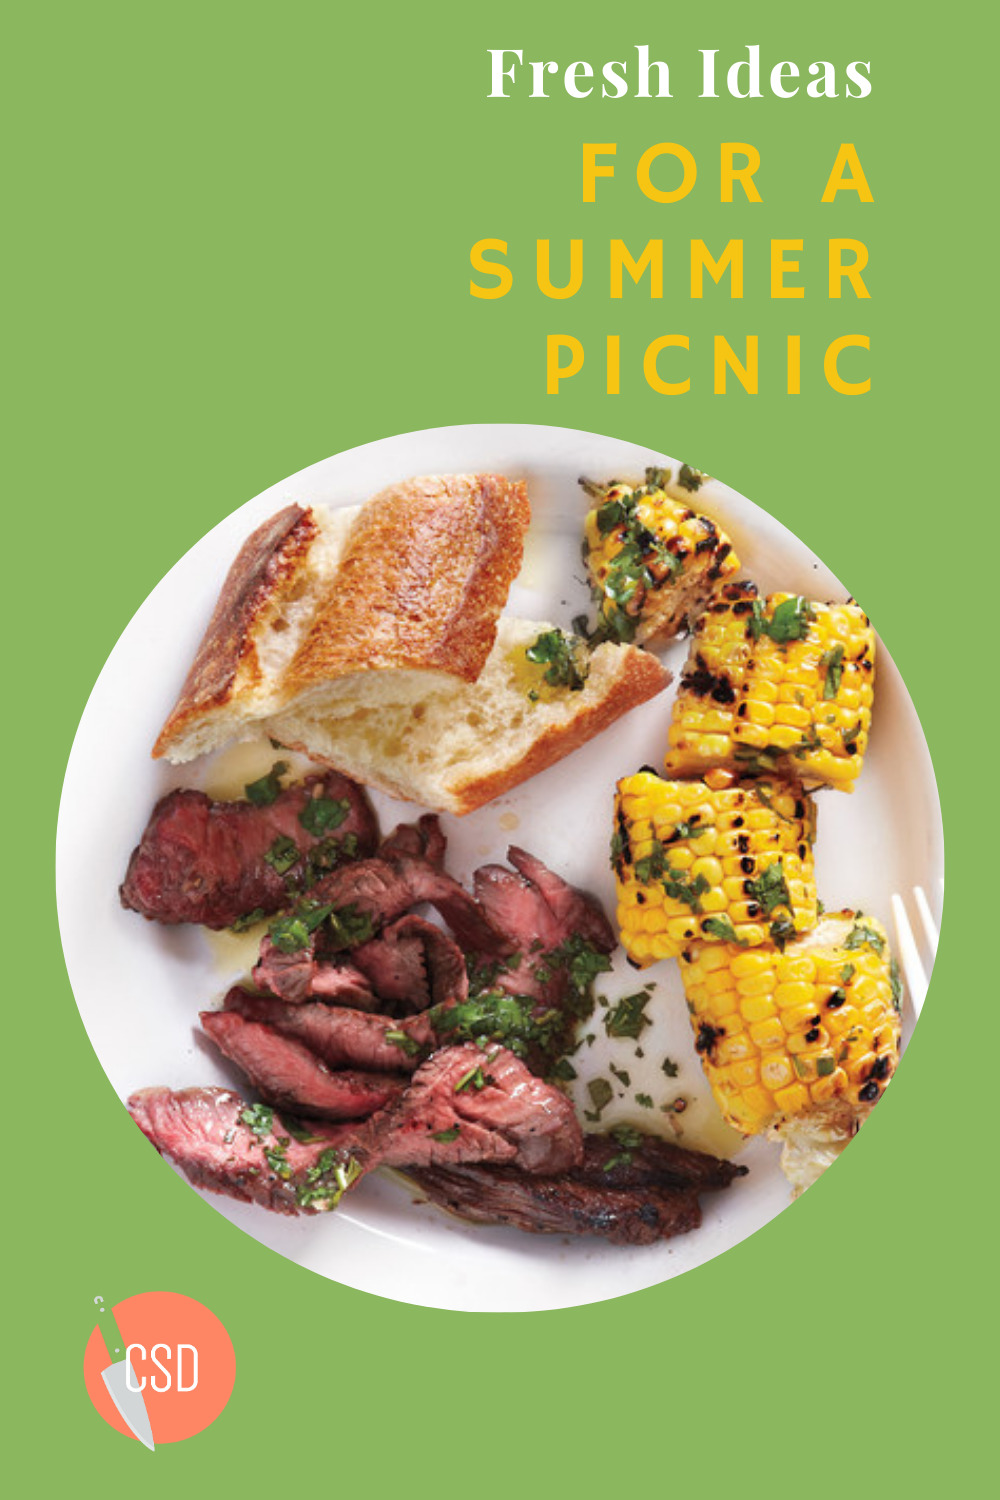 Cutsidedown.com always knows the best thing to make for any occasion! Find delicious food and drinks no matter what time of year! Enjoy a nice summer's day with these easy picnic recipes!